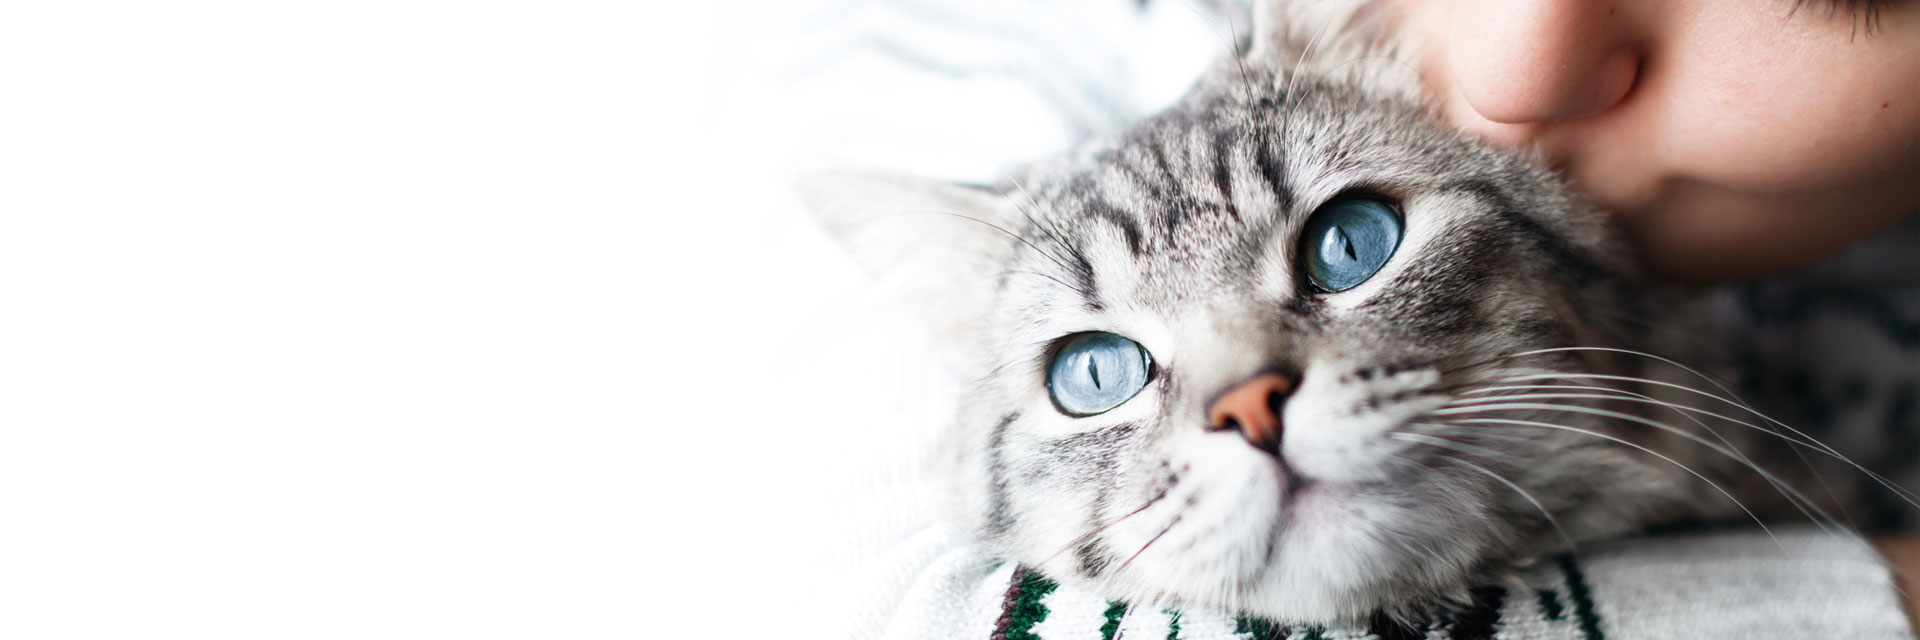 cat care, happy and healthy kitty, preventative care